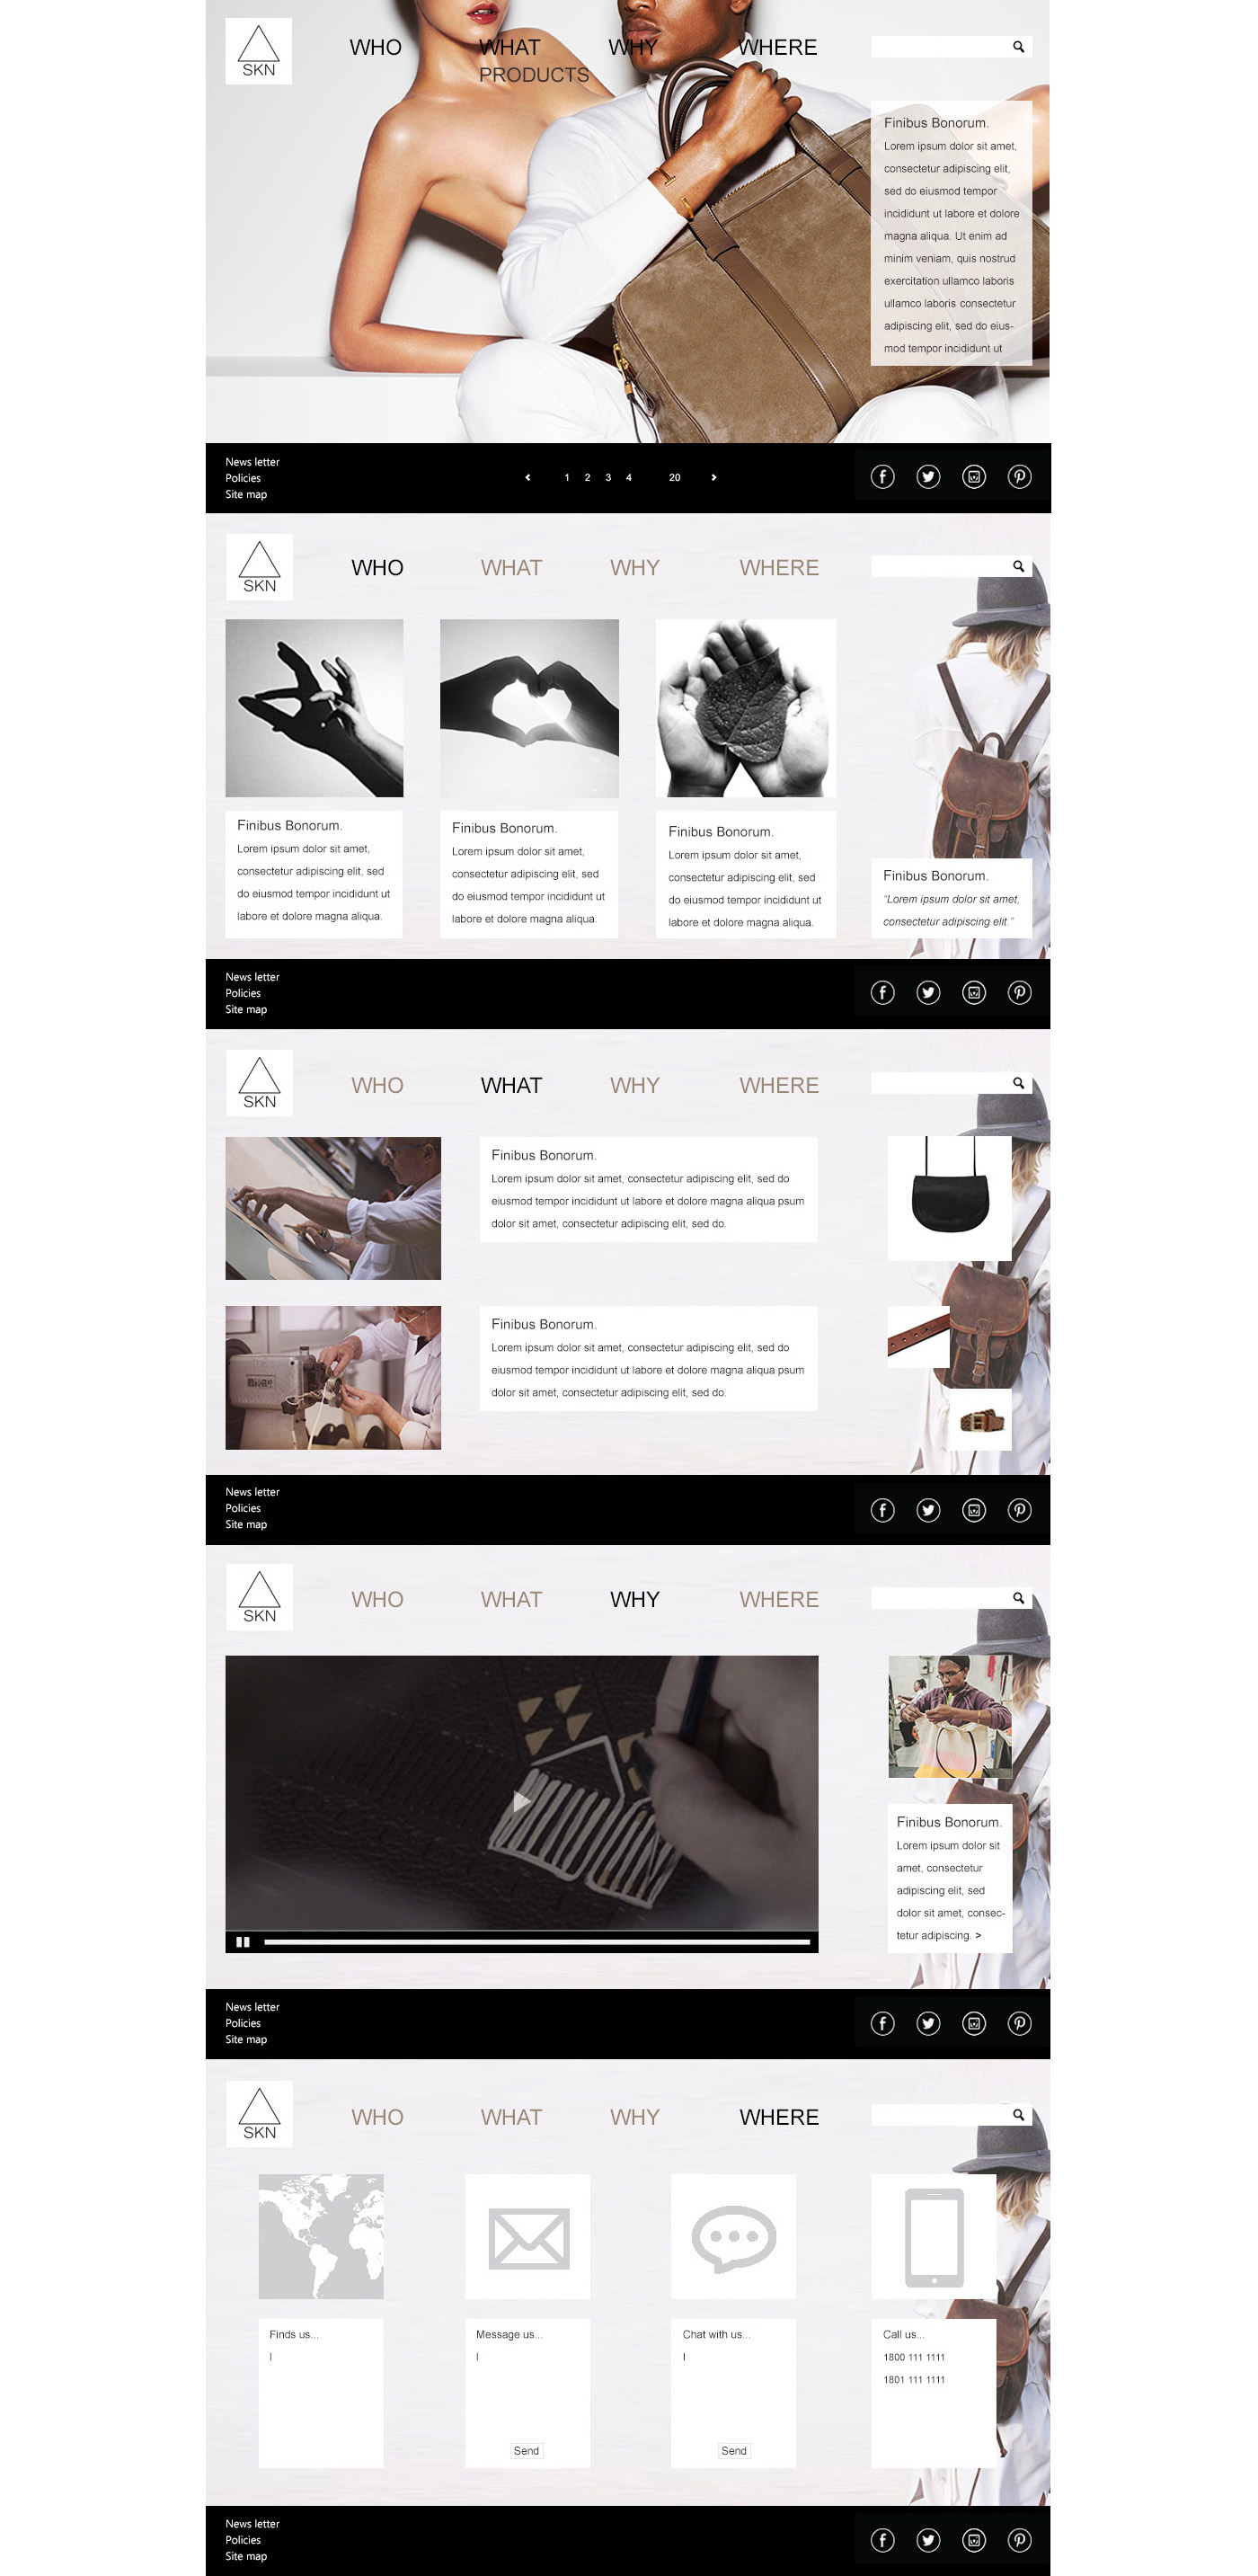 layouttemplate-modify-1-images-solo